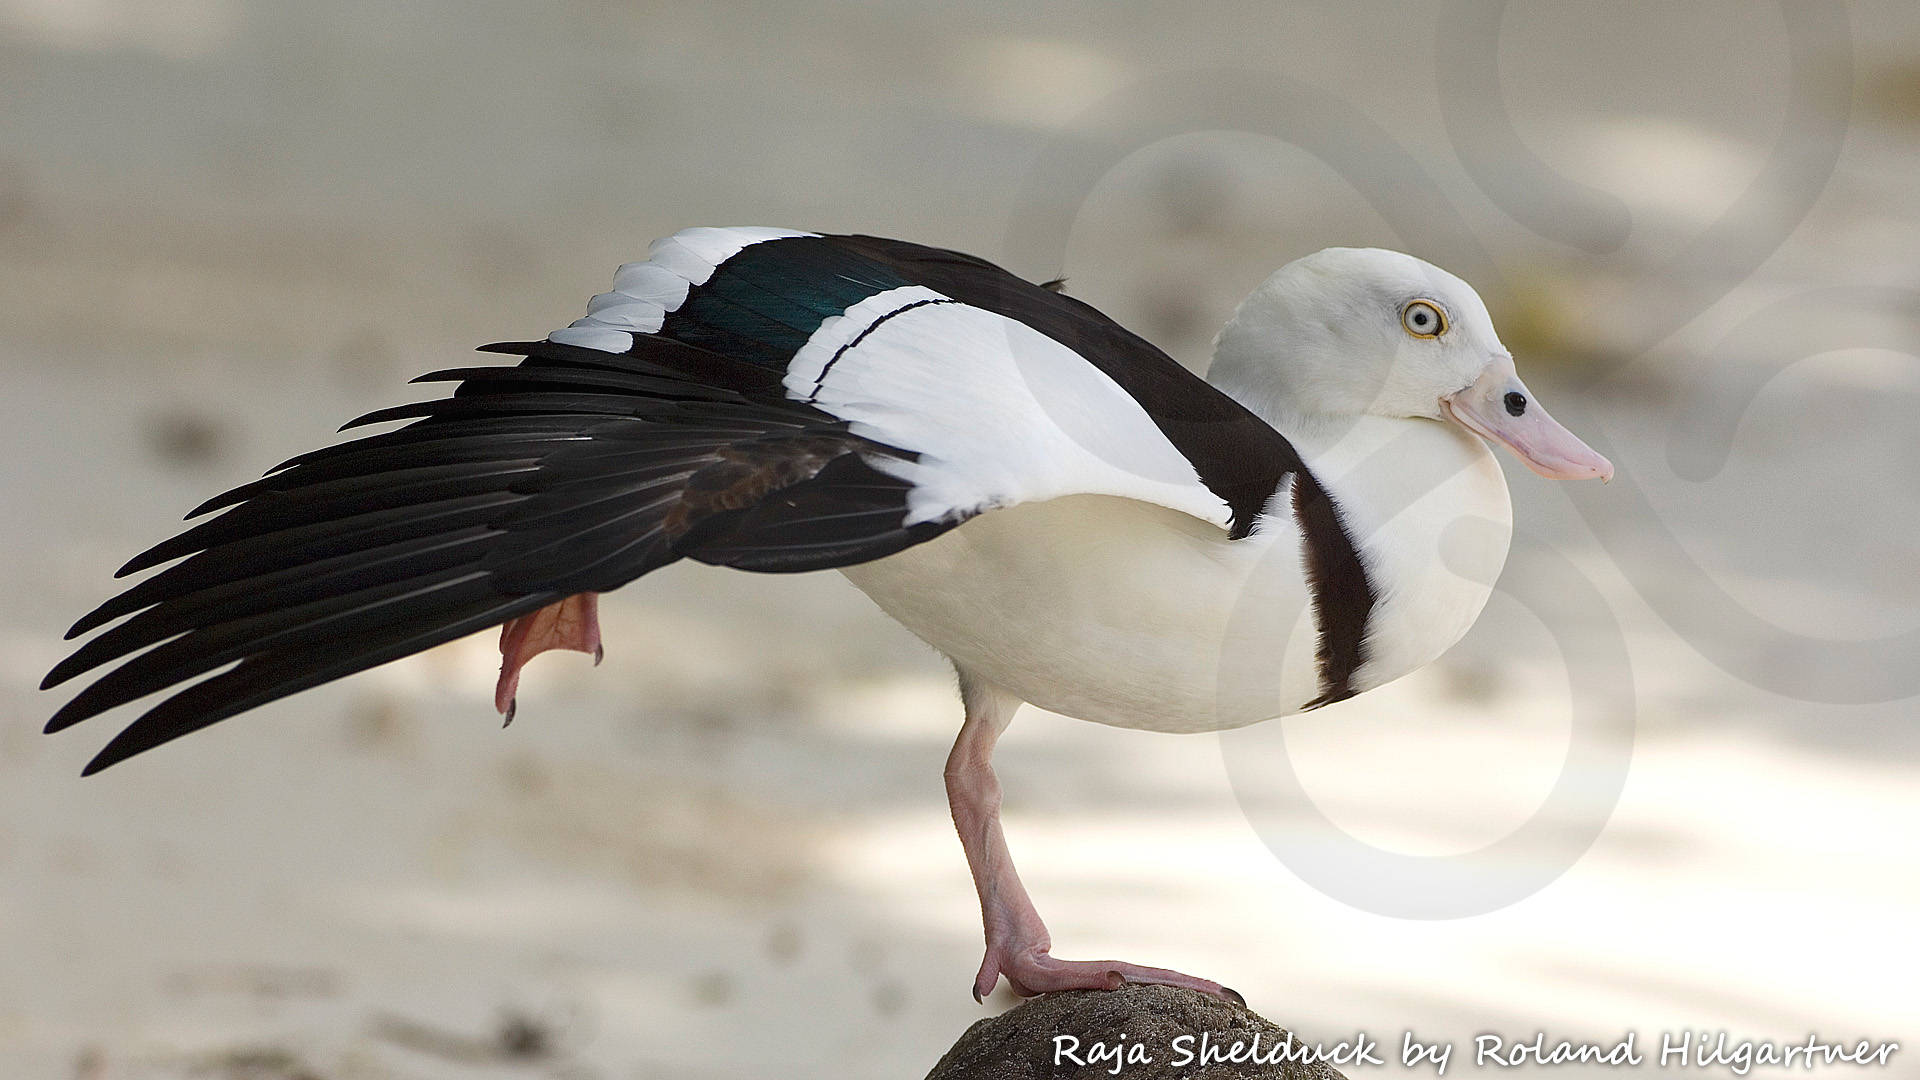 The Trans-Fly zone is a globally significant staging and wintering ground for waterfowl from Australia such as the Raja Shelduck Radjah radjah. Copyright © Roland Hilgartner